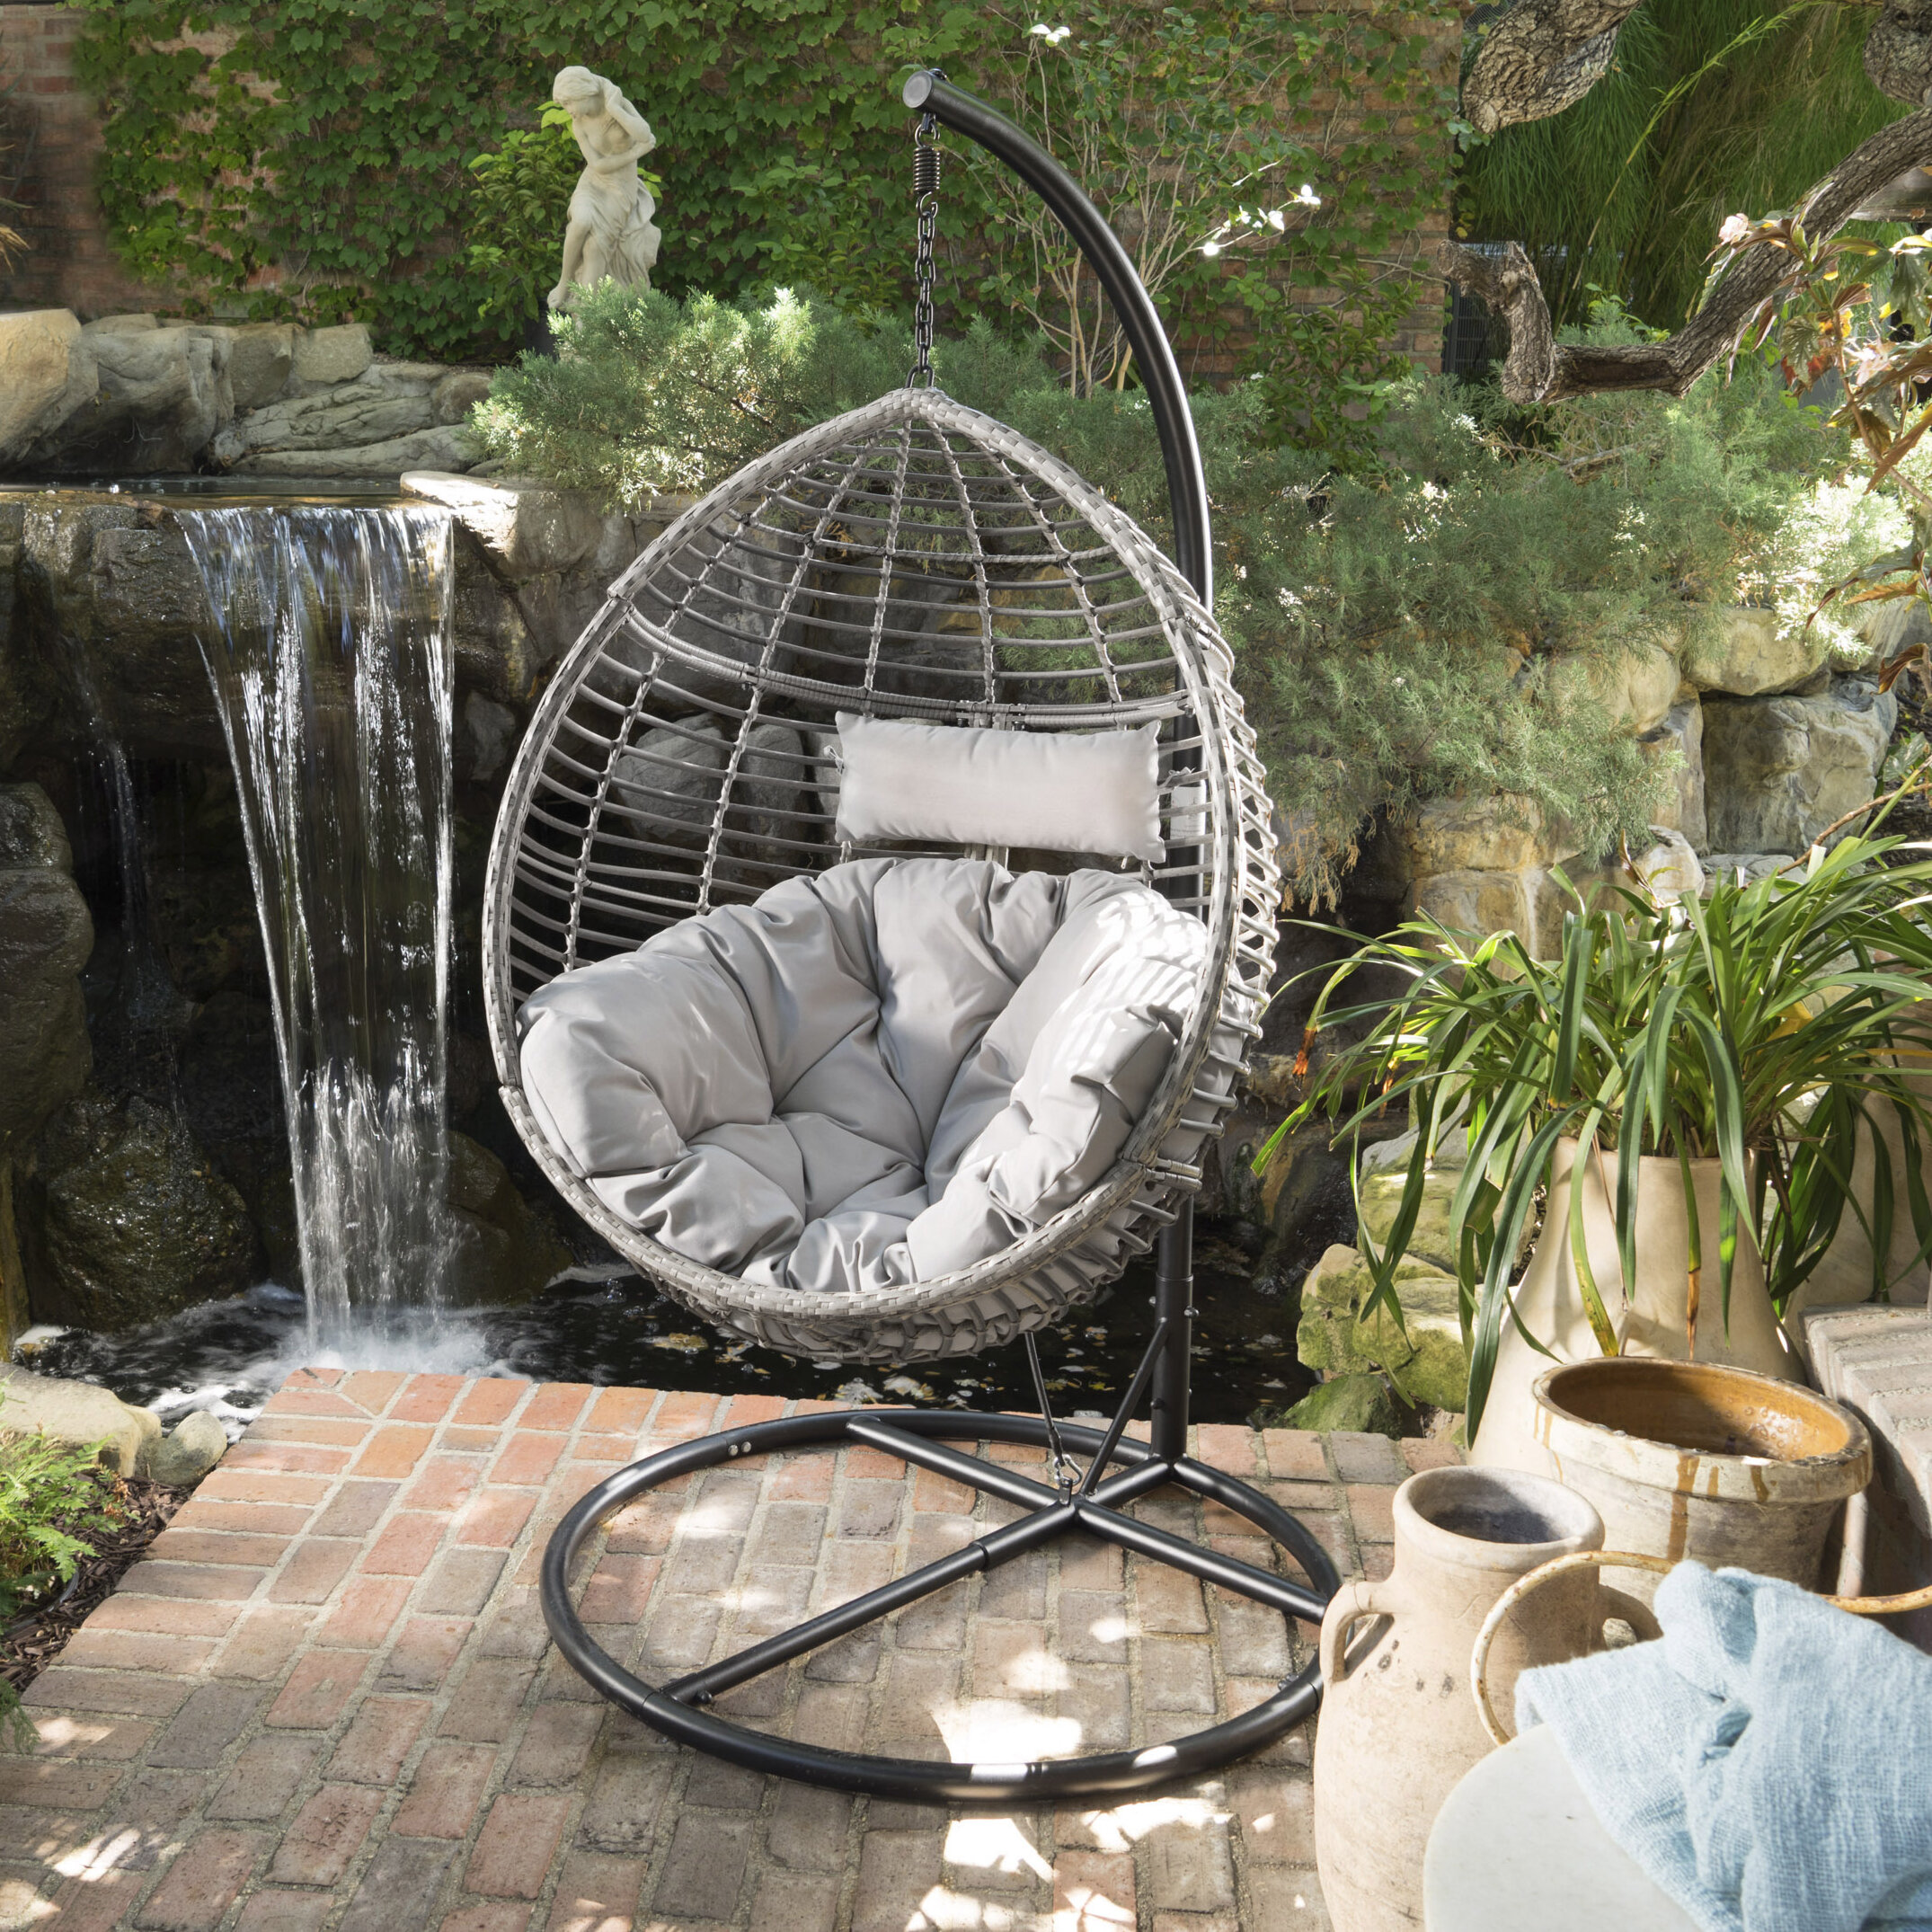 Brayden Studio Weller Outdoor Wicker Basket Swing Chair With Stand U0026  Reviews | Wayfair